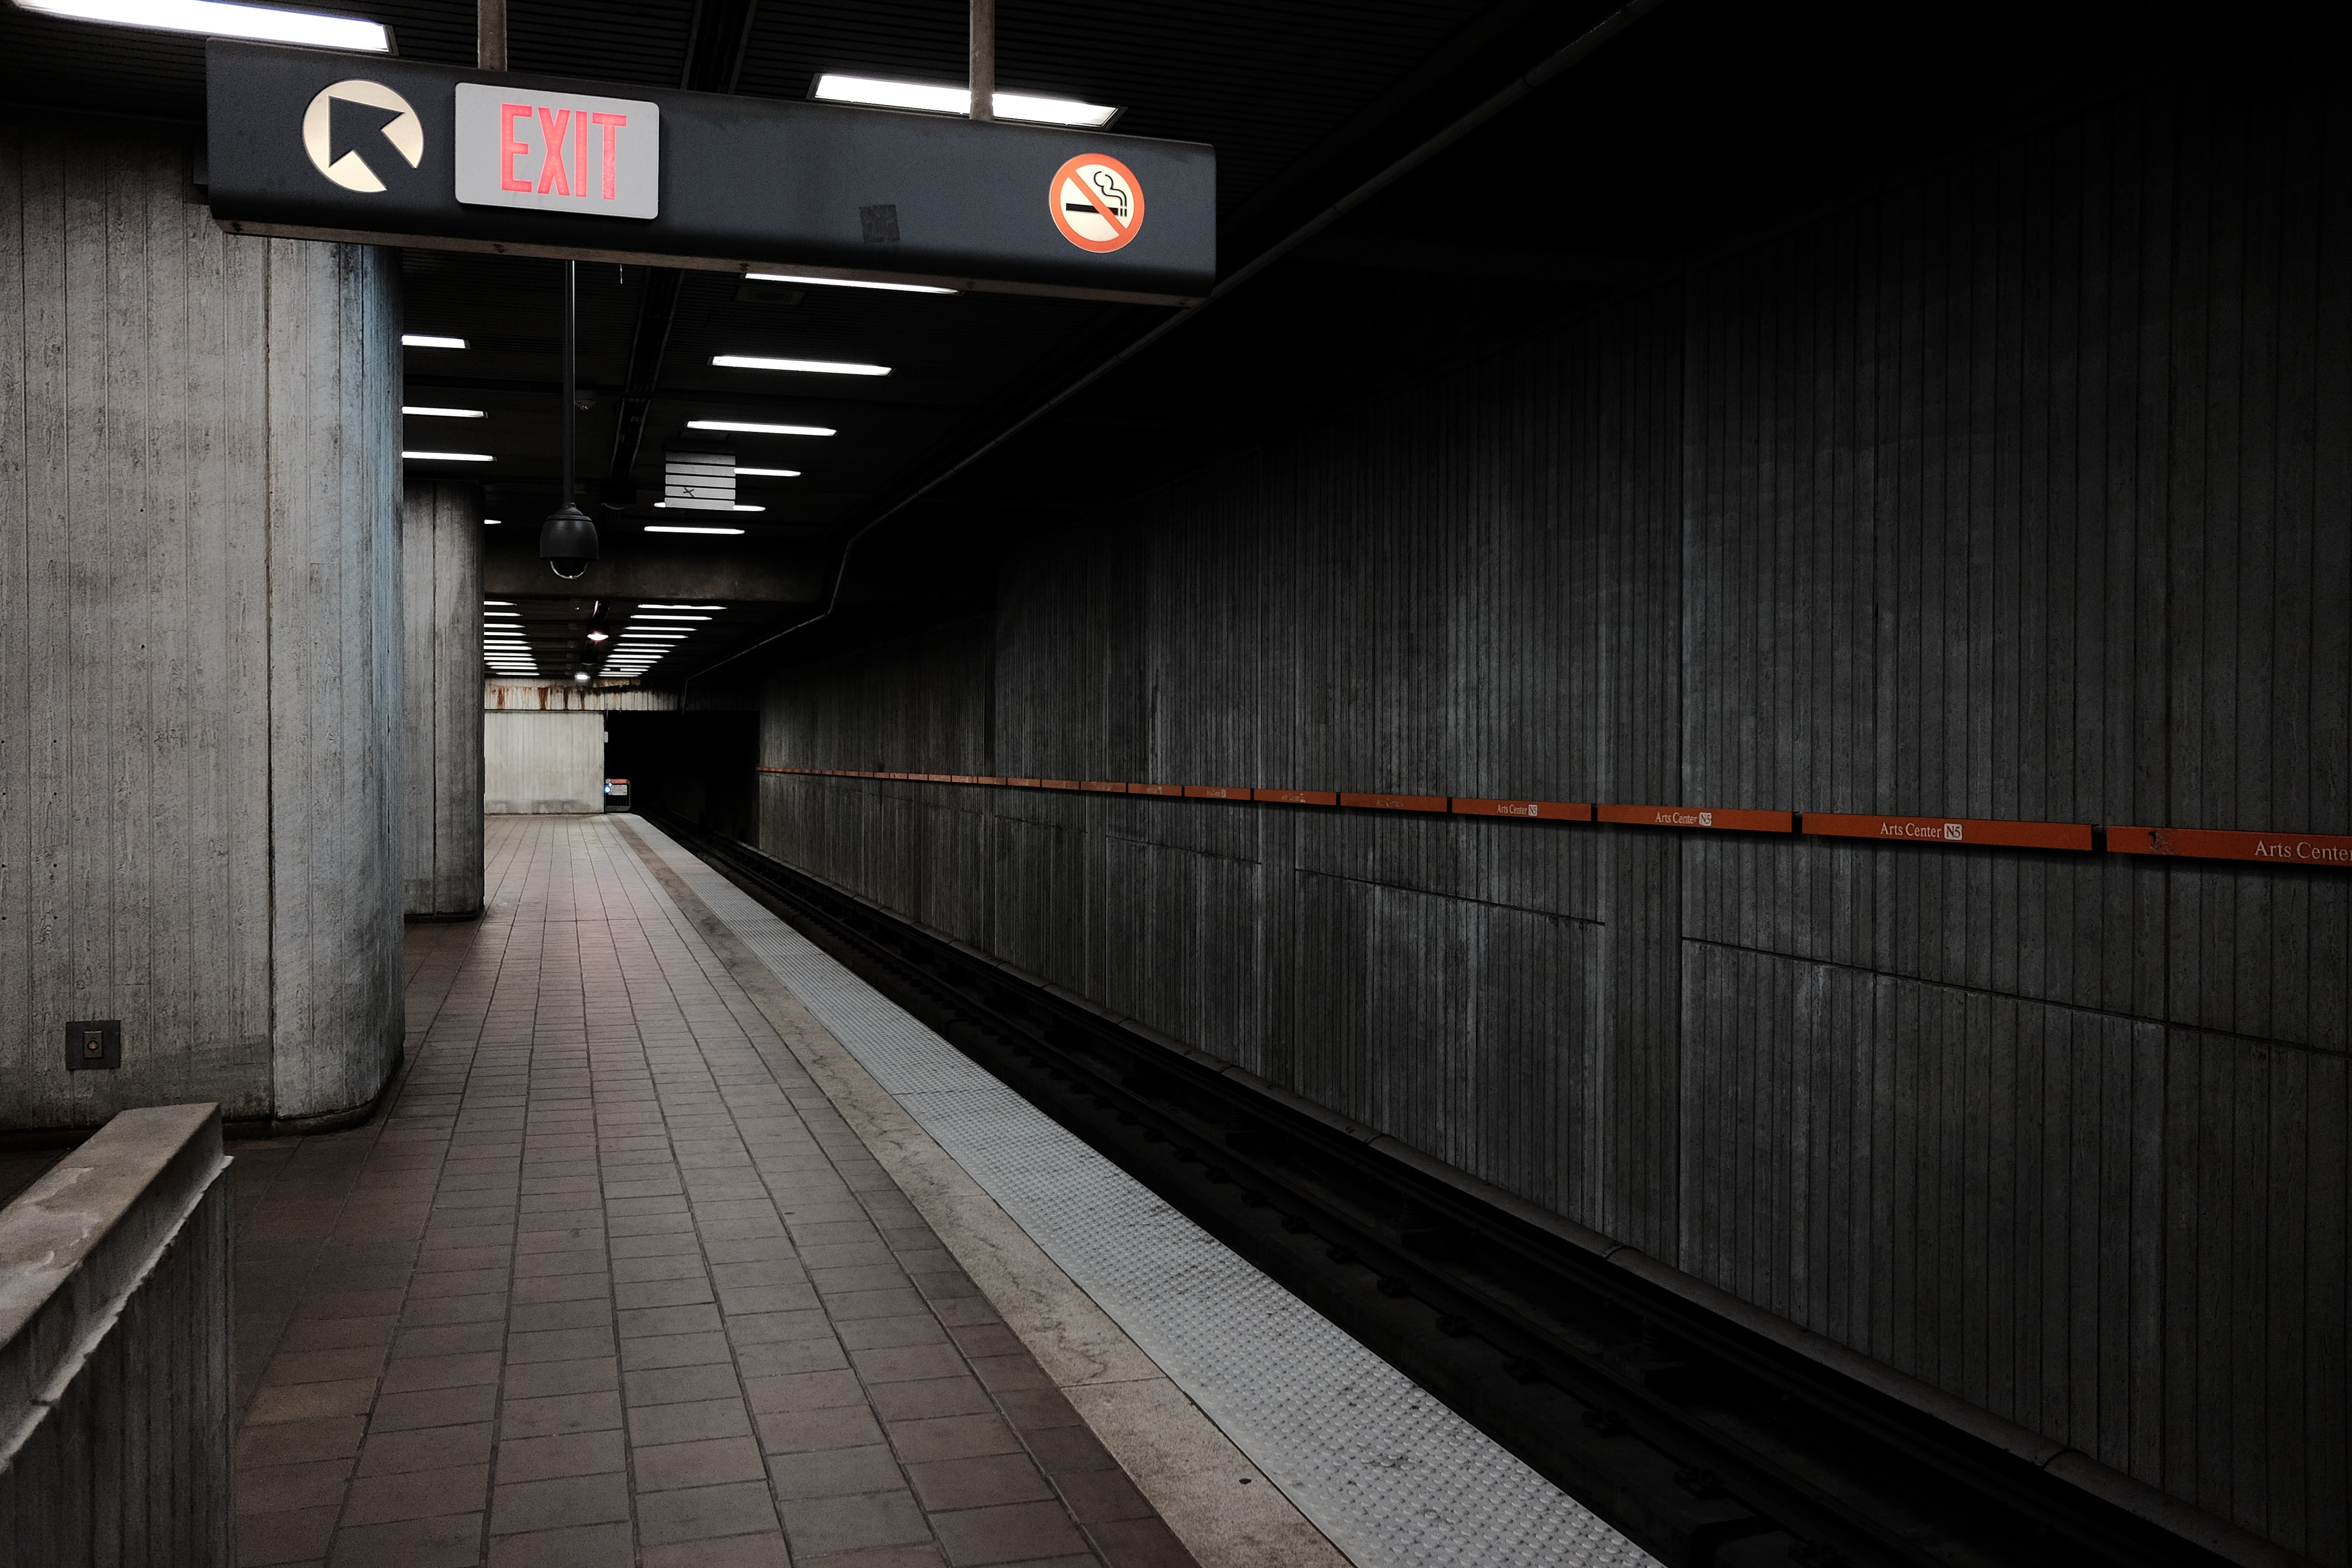 Subway platform with exit sign and concrete architecture and tunnel, Arts Center Transit Station